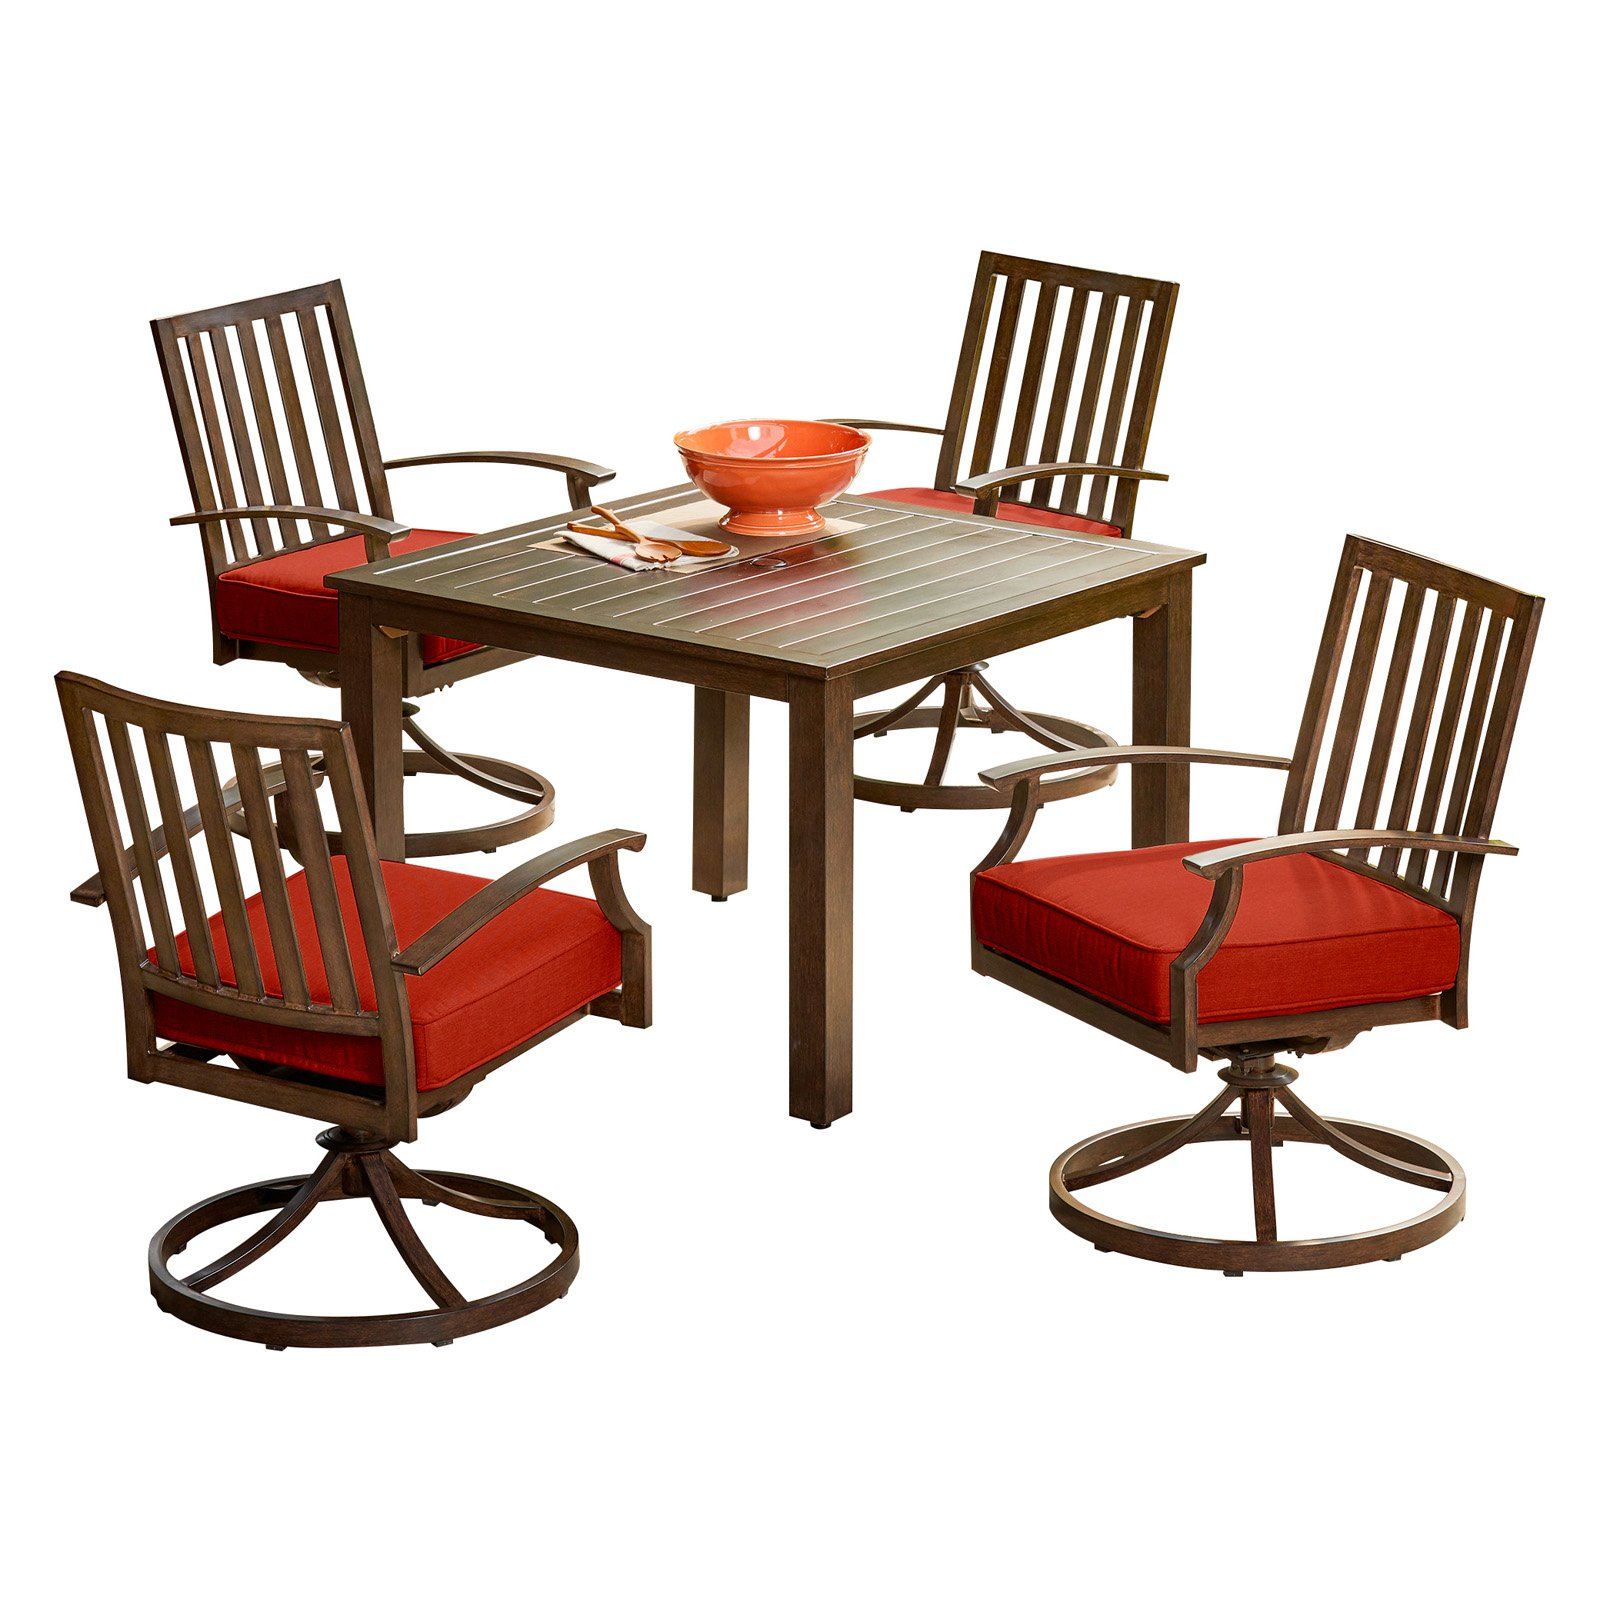 Fashionable Outdoor Royal Garden Bridgeport Aluminum 5 Piece Motion Patio Dining With Regard To Saintcroix 3 Piece Dining Sets (View 4 of 25)